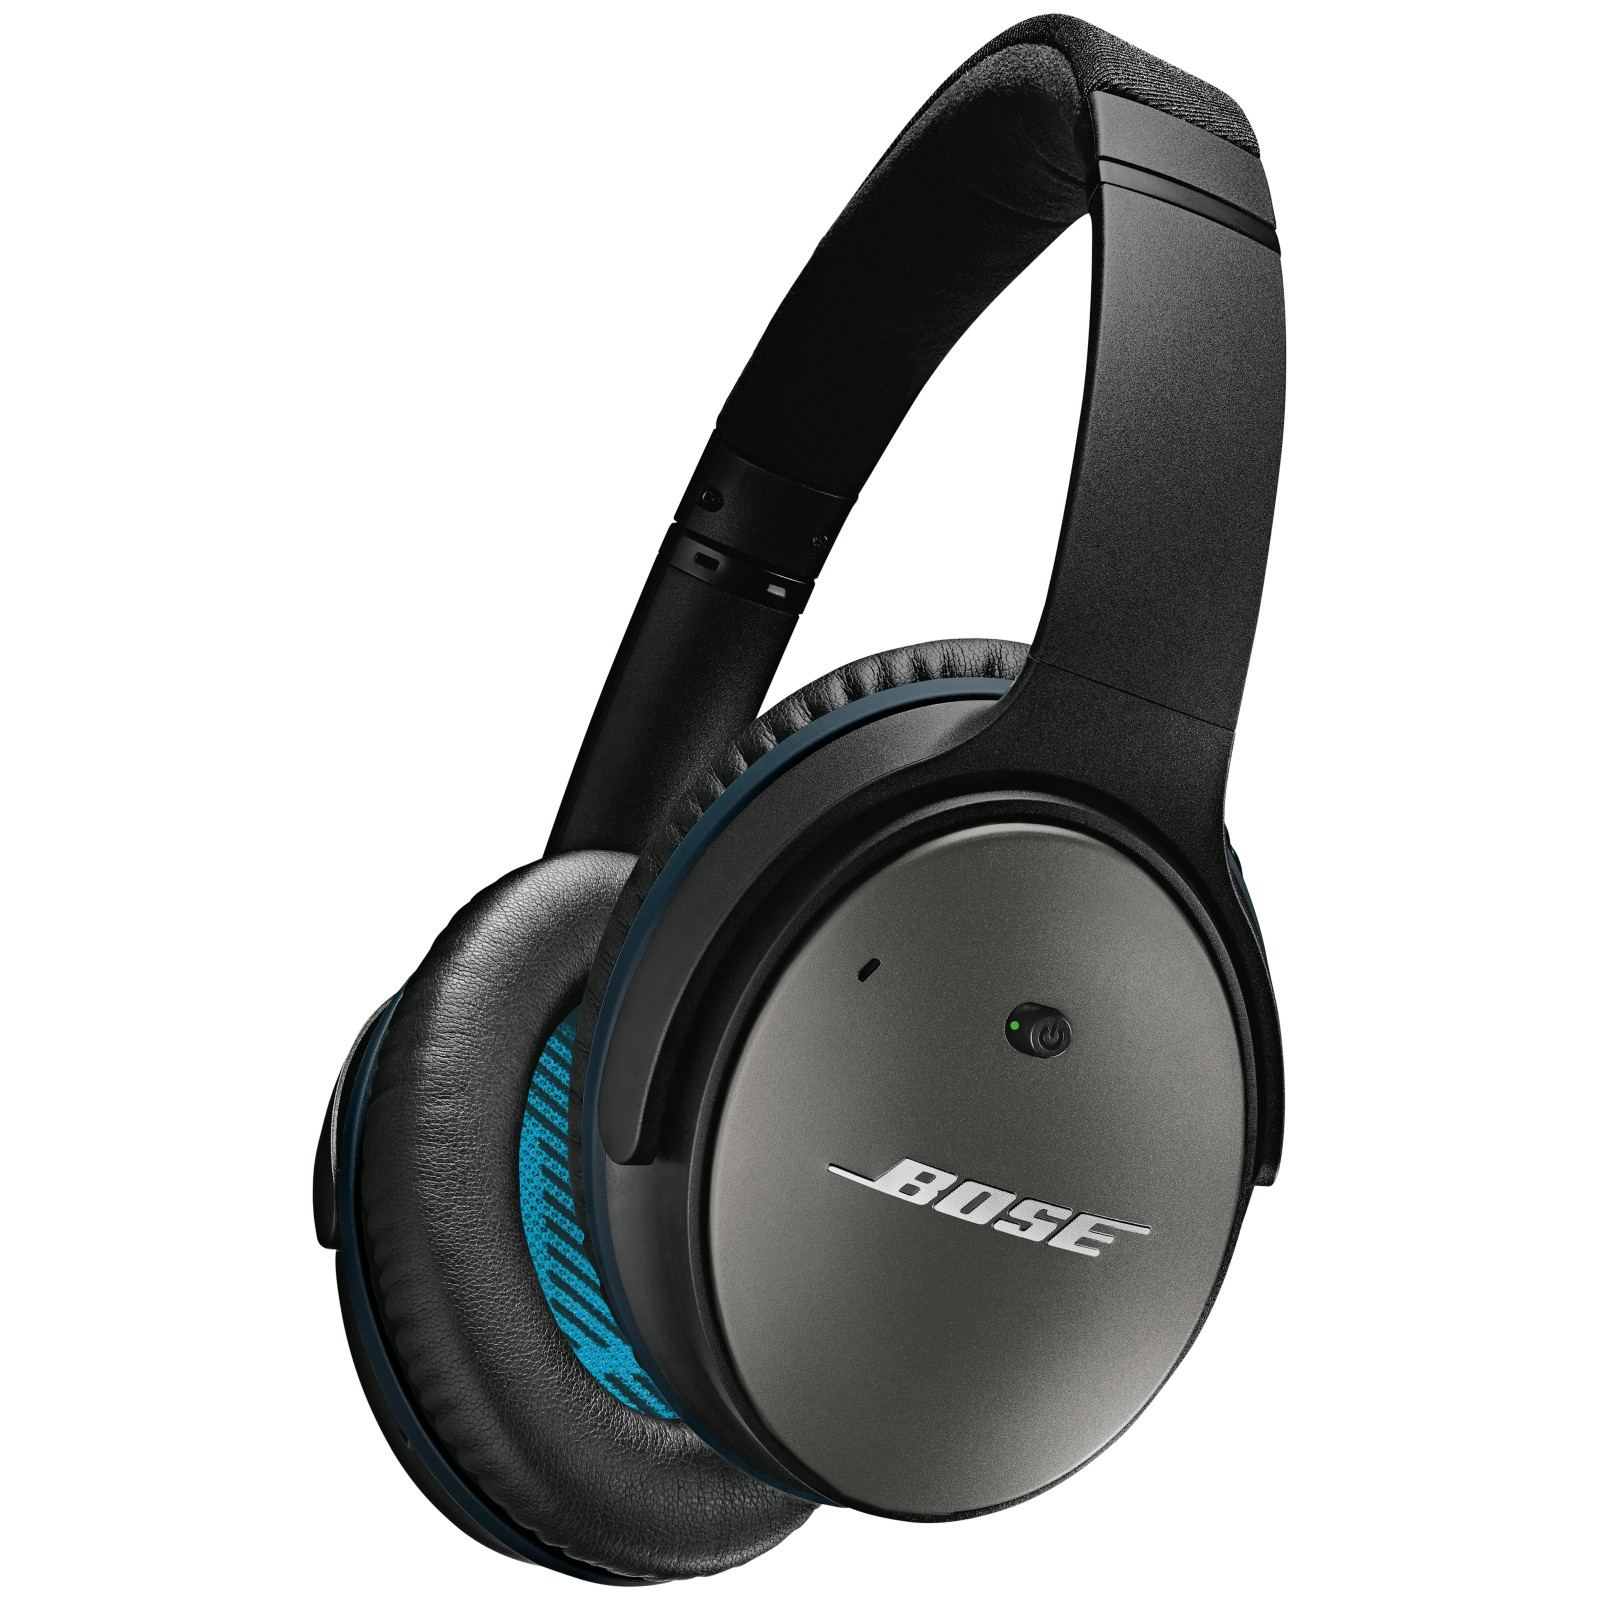 Bose® QuietComfort® Noise Cancelling® QC25 Over-Ear Headphones for Android/ Samsung Devices Black/Silver